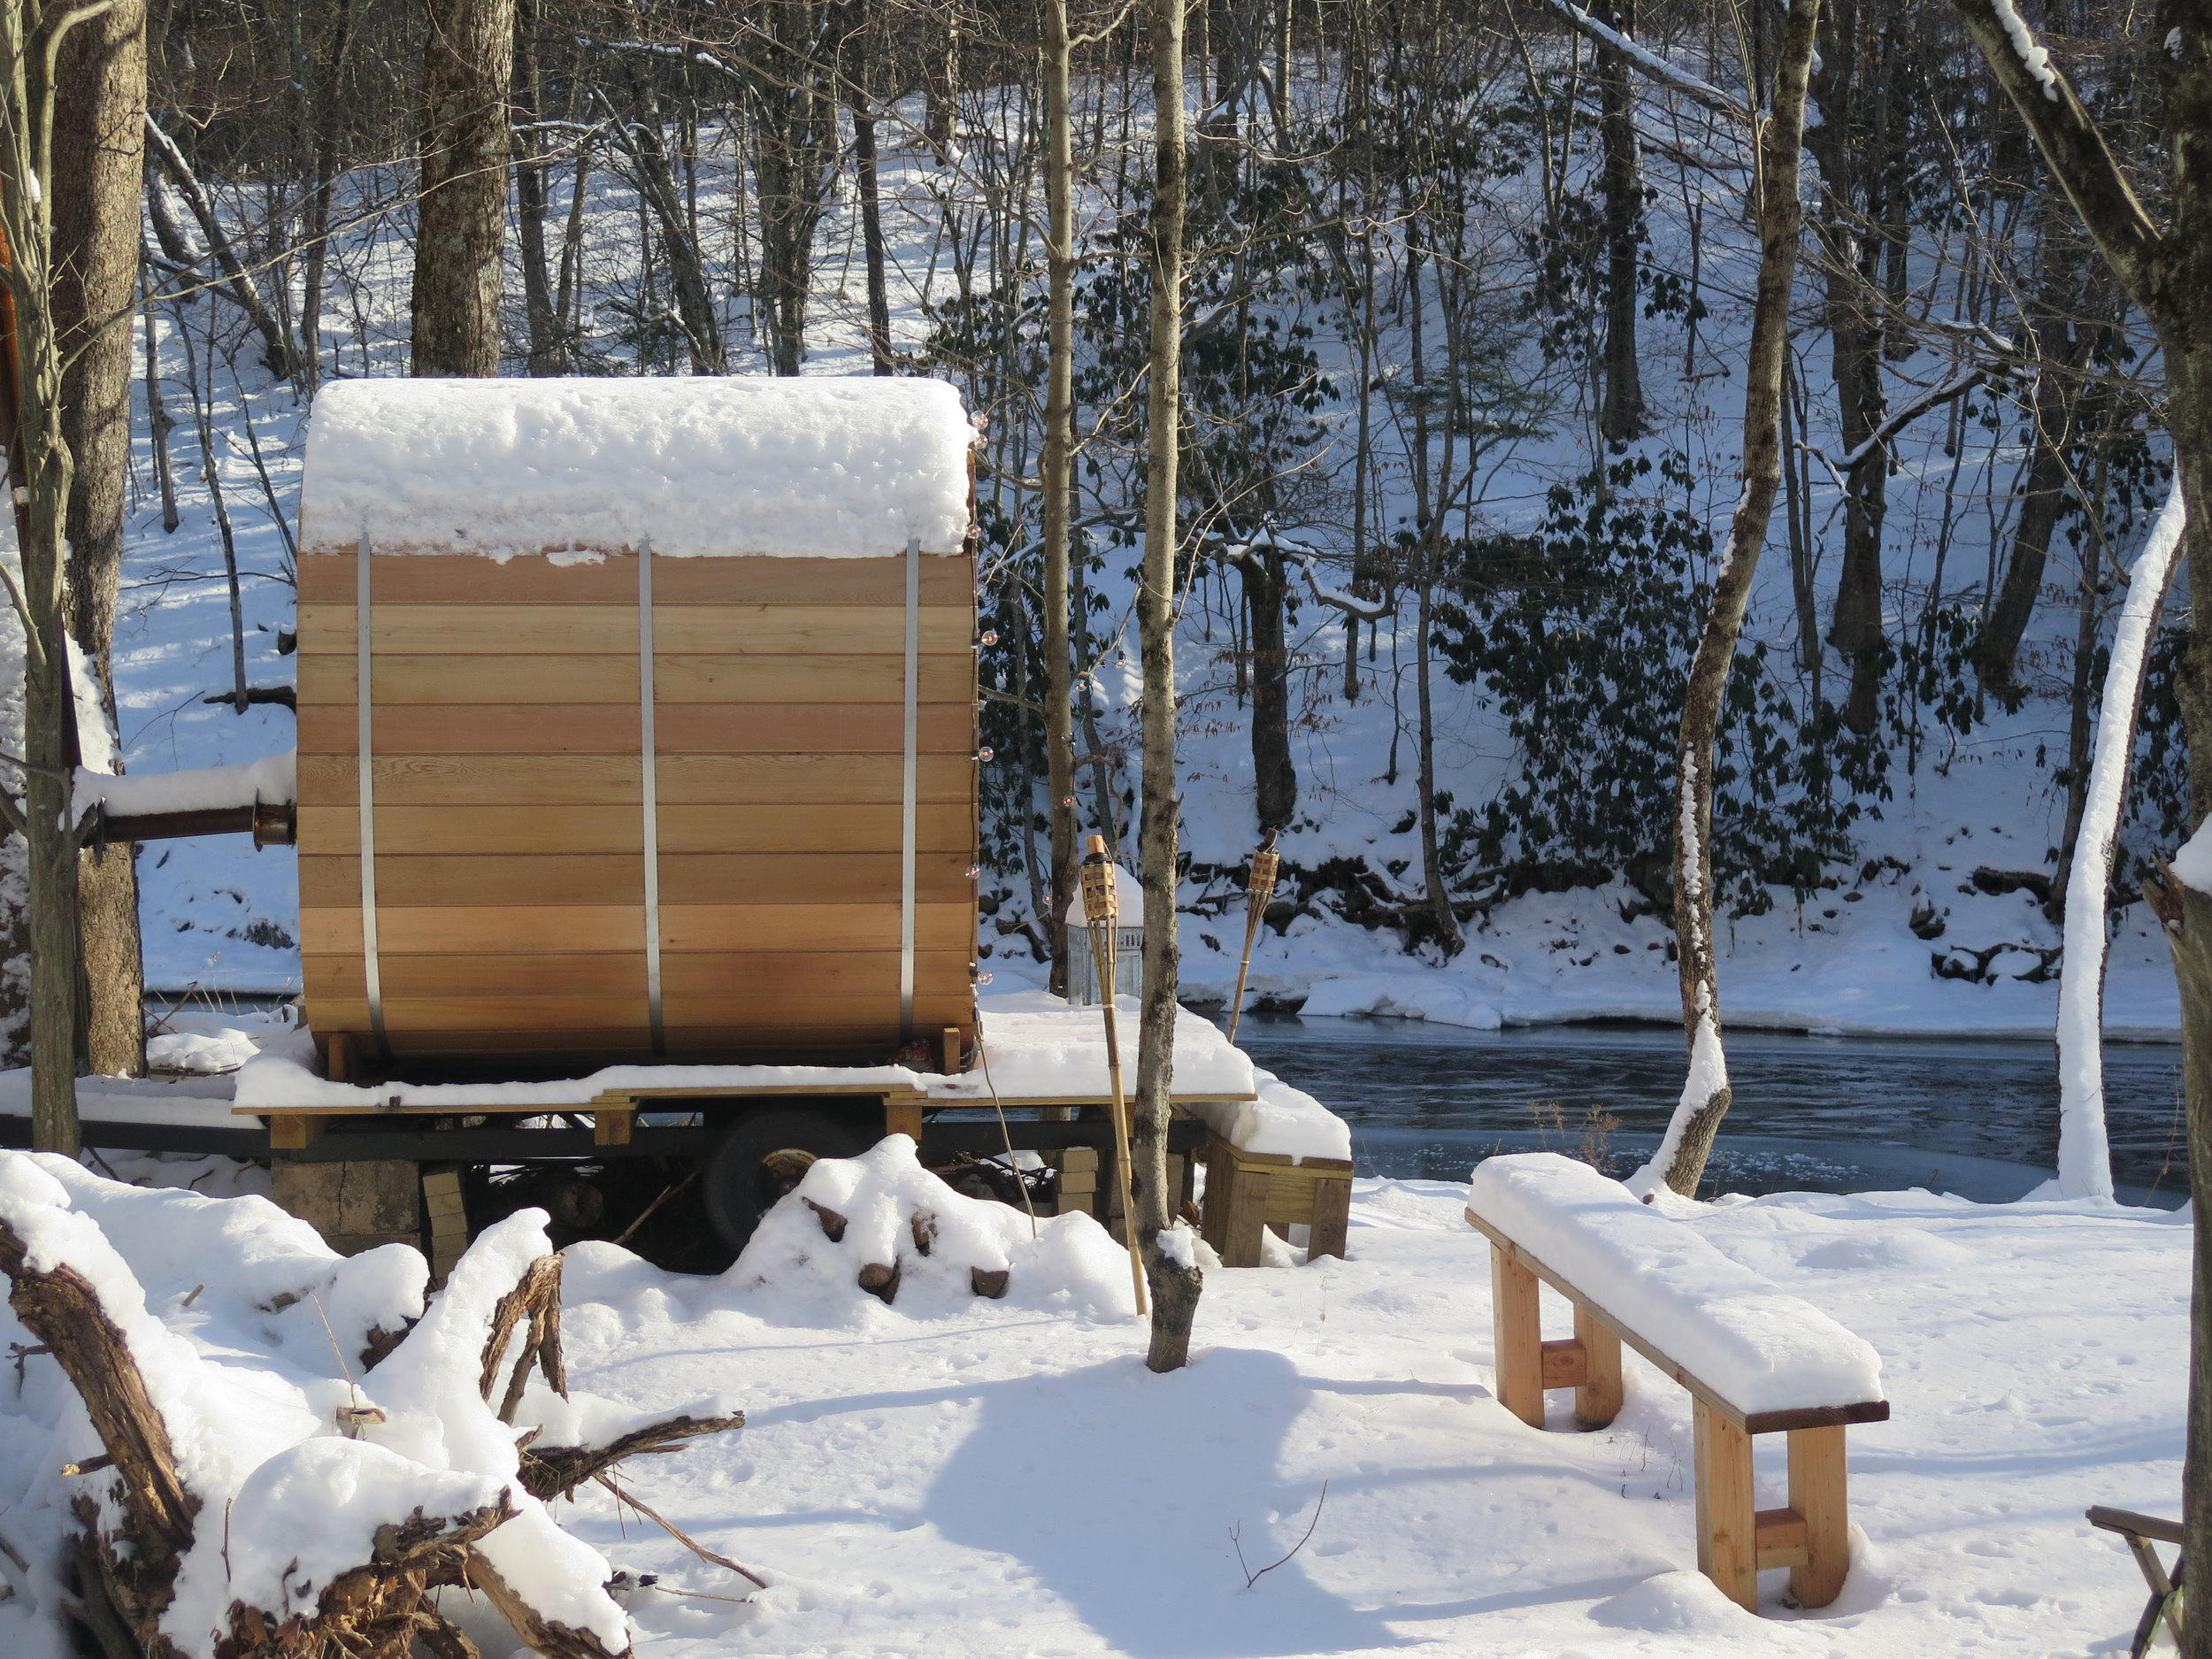 Sauna from the side_snow_Livingston Manor Fly Fishing Club.JPG